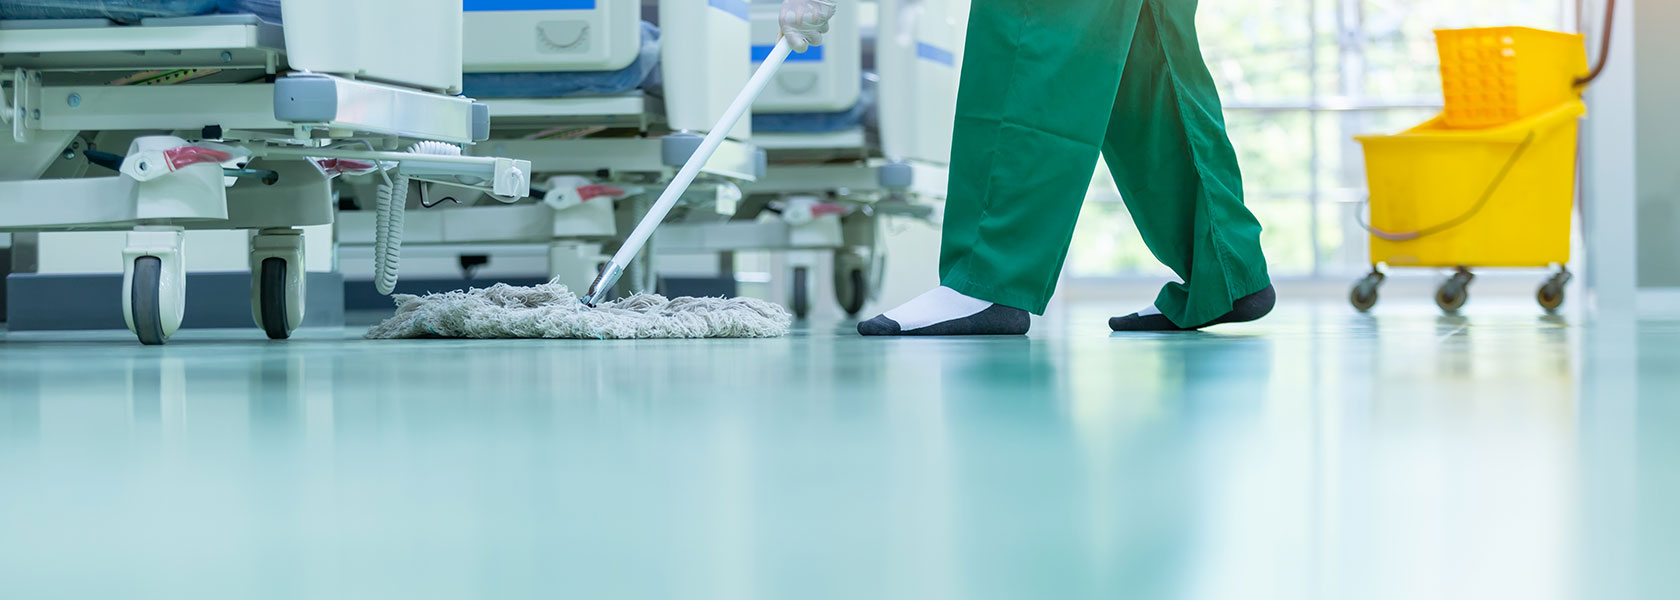 Hospital Cleaning Services in Dubai